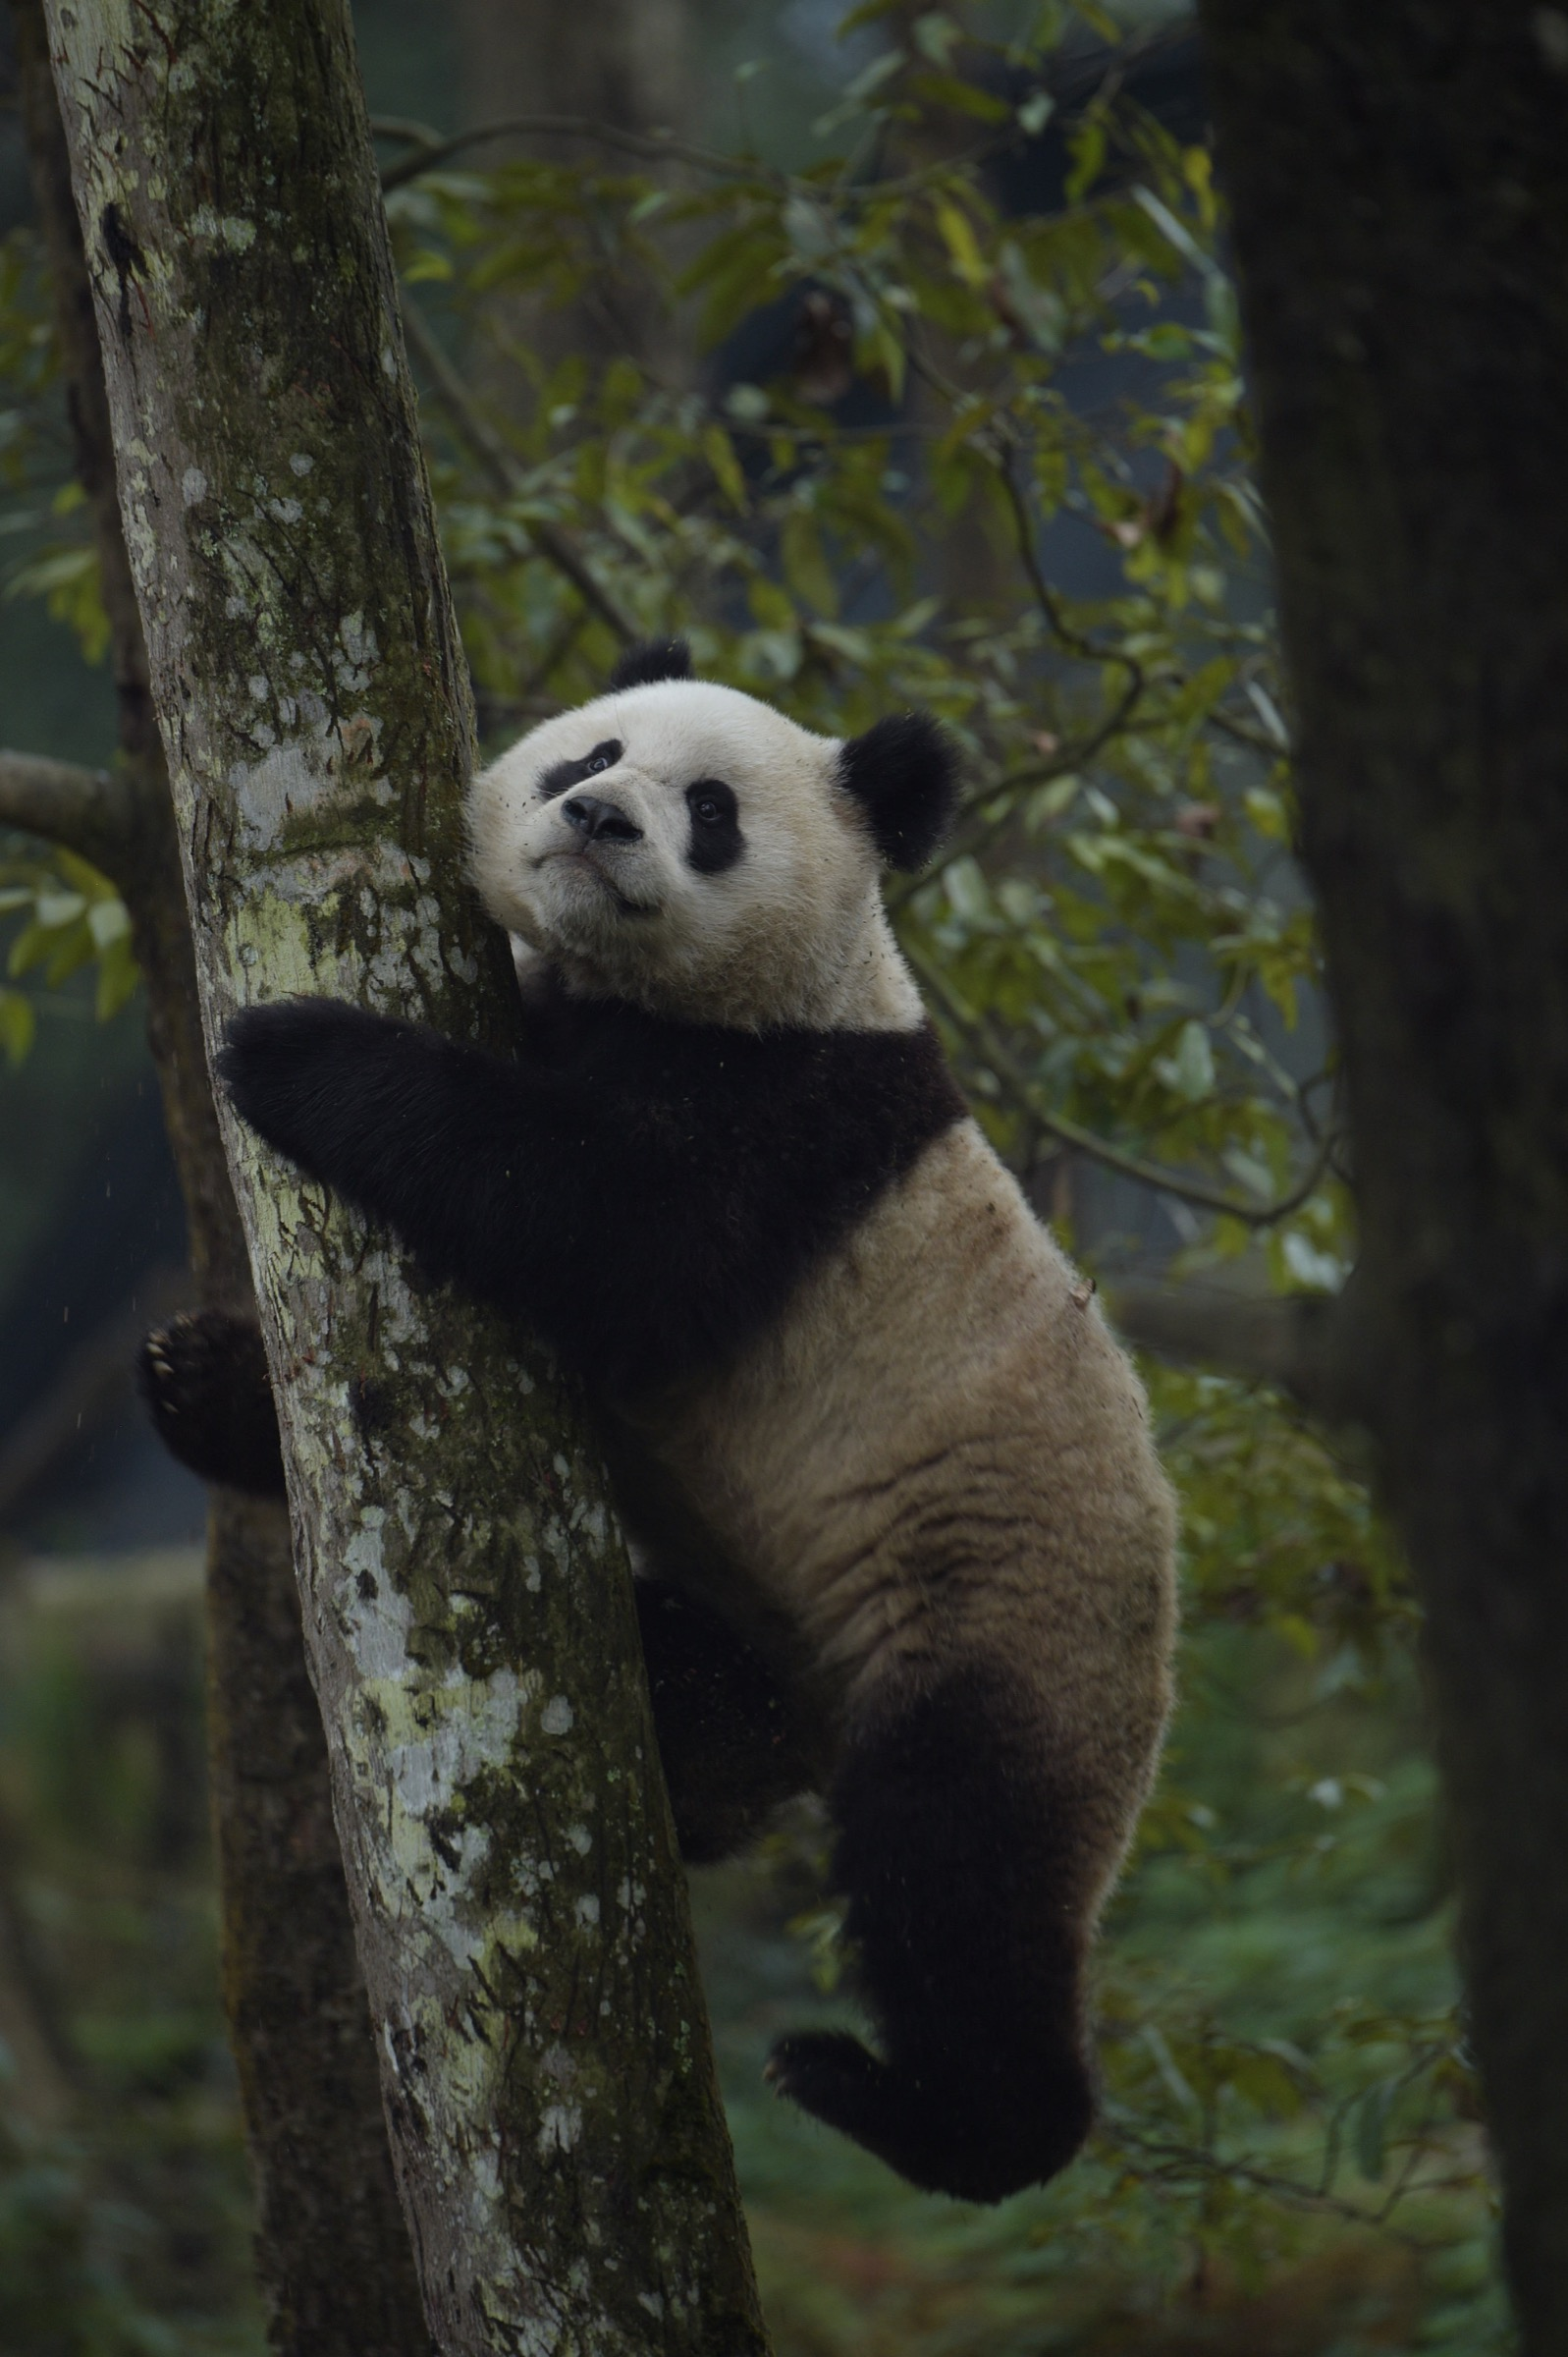 A two-year-old male panda climbs atree in an enclosure at the Wolong Nature Reserve in Sichuan province. After decades of habitat degradation and overhunting across much of the species' range, there are now fewer than 2,000 giant pandas left in the wild. Photograph by Ami Vitale